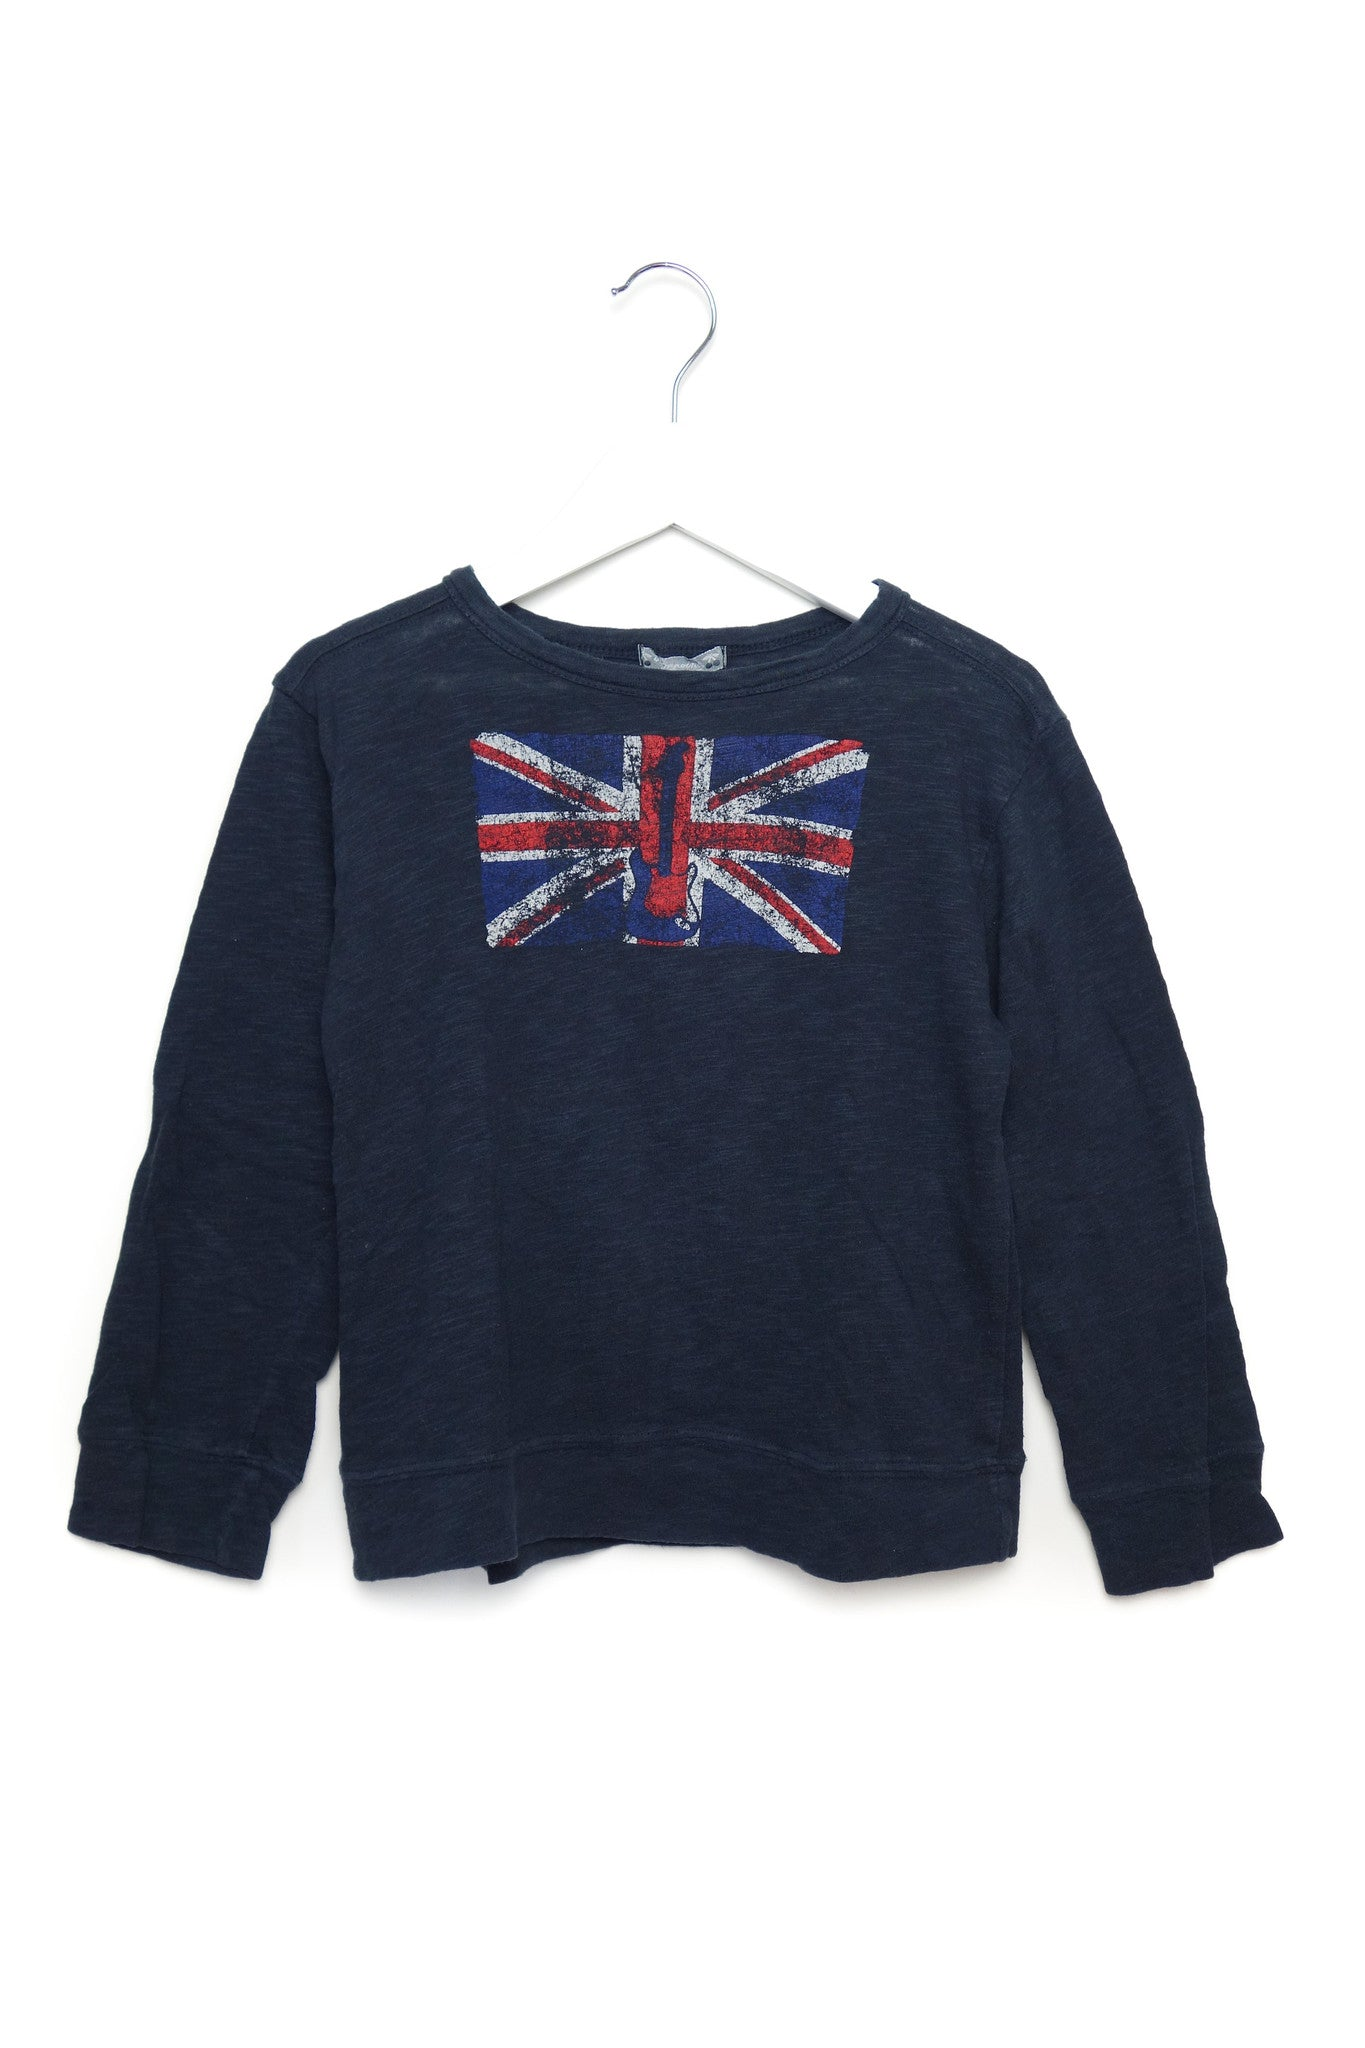 10001539 Bonpoint Kids~Sweatshirt 6T at Retykle